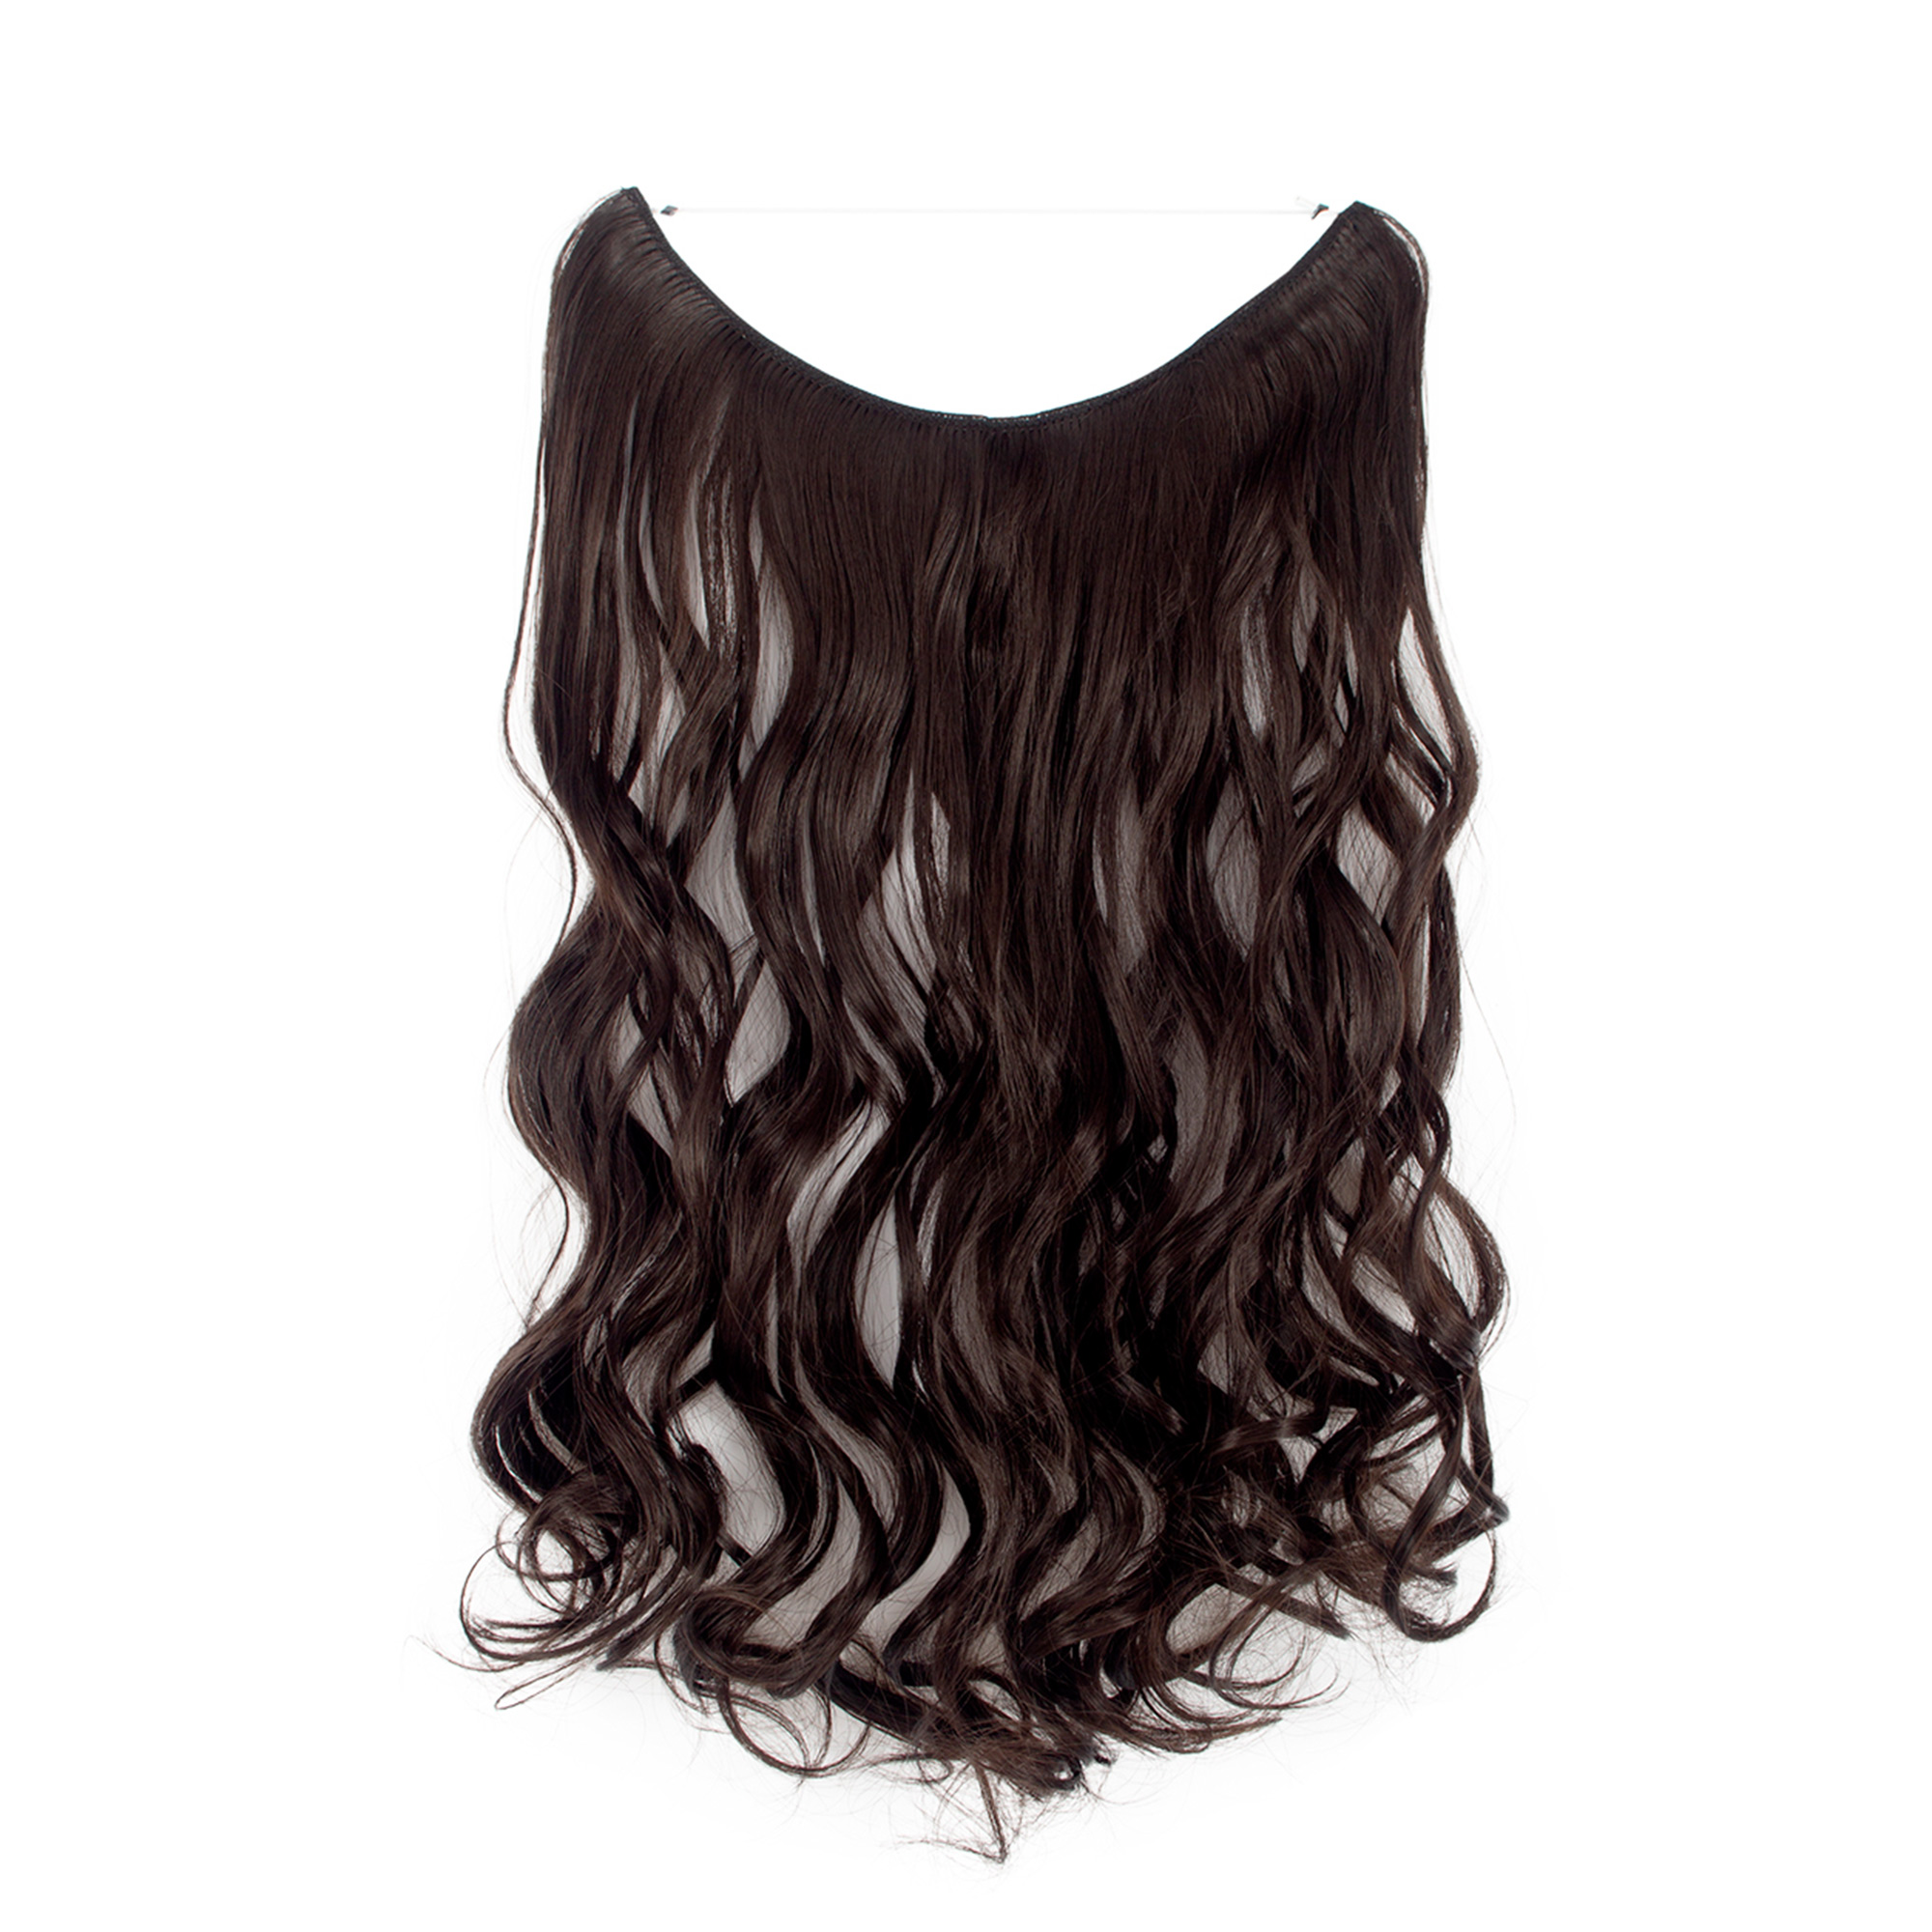 Natural Curly/Wavy Wire Headband Hidden Hair Extension NO Clip Ins Transparent Wire Hair Extensions